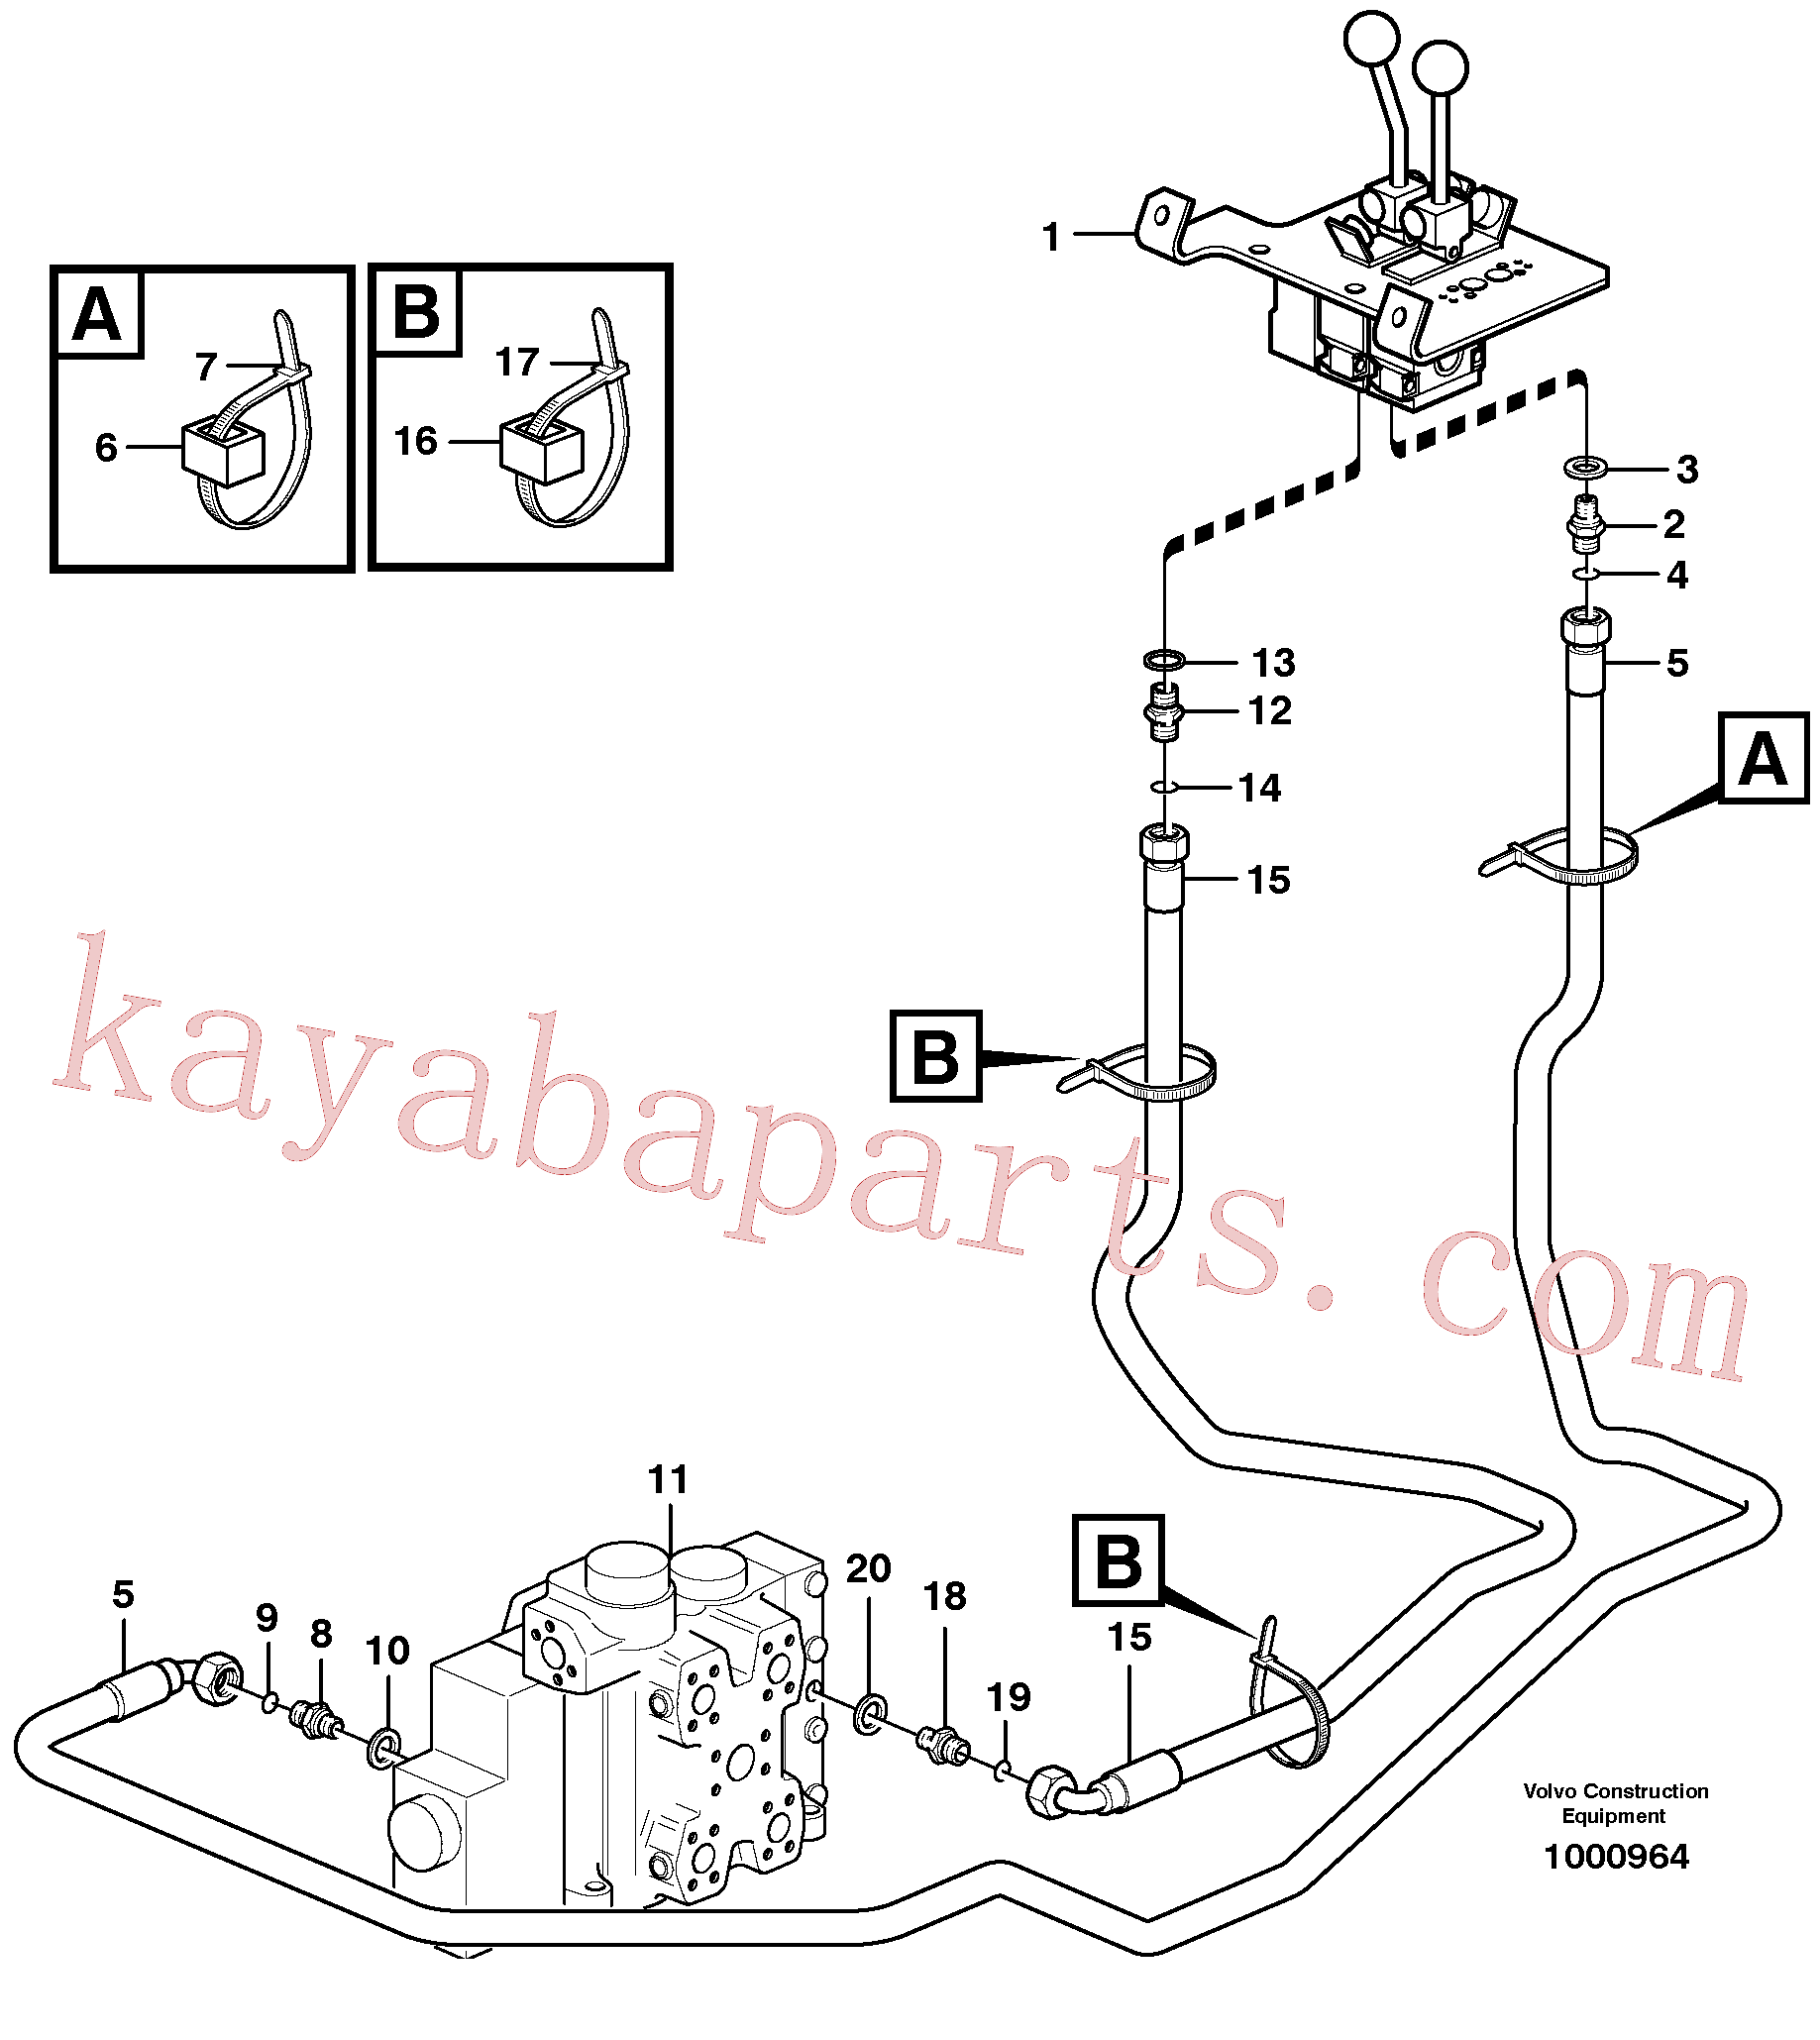 RM59929984 for Volvo Servo - hydraulic, control lines, lift(1000964 assembly)